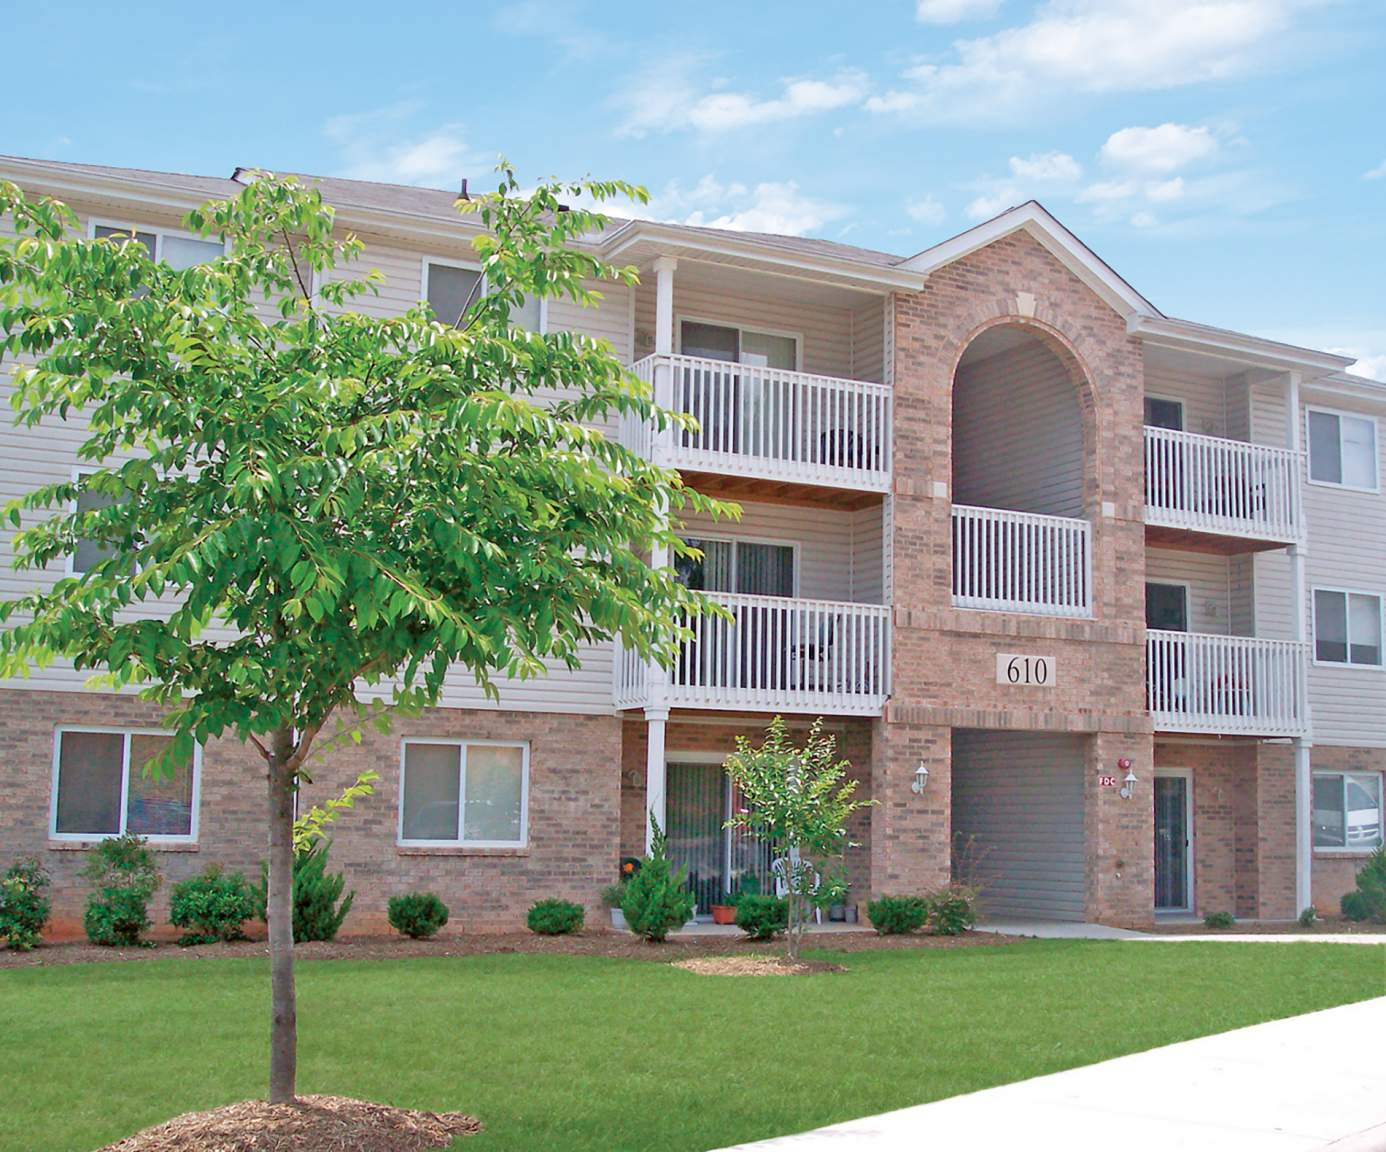 Twin Cedars | Miller-Valentine Residential Property Management, Inc.